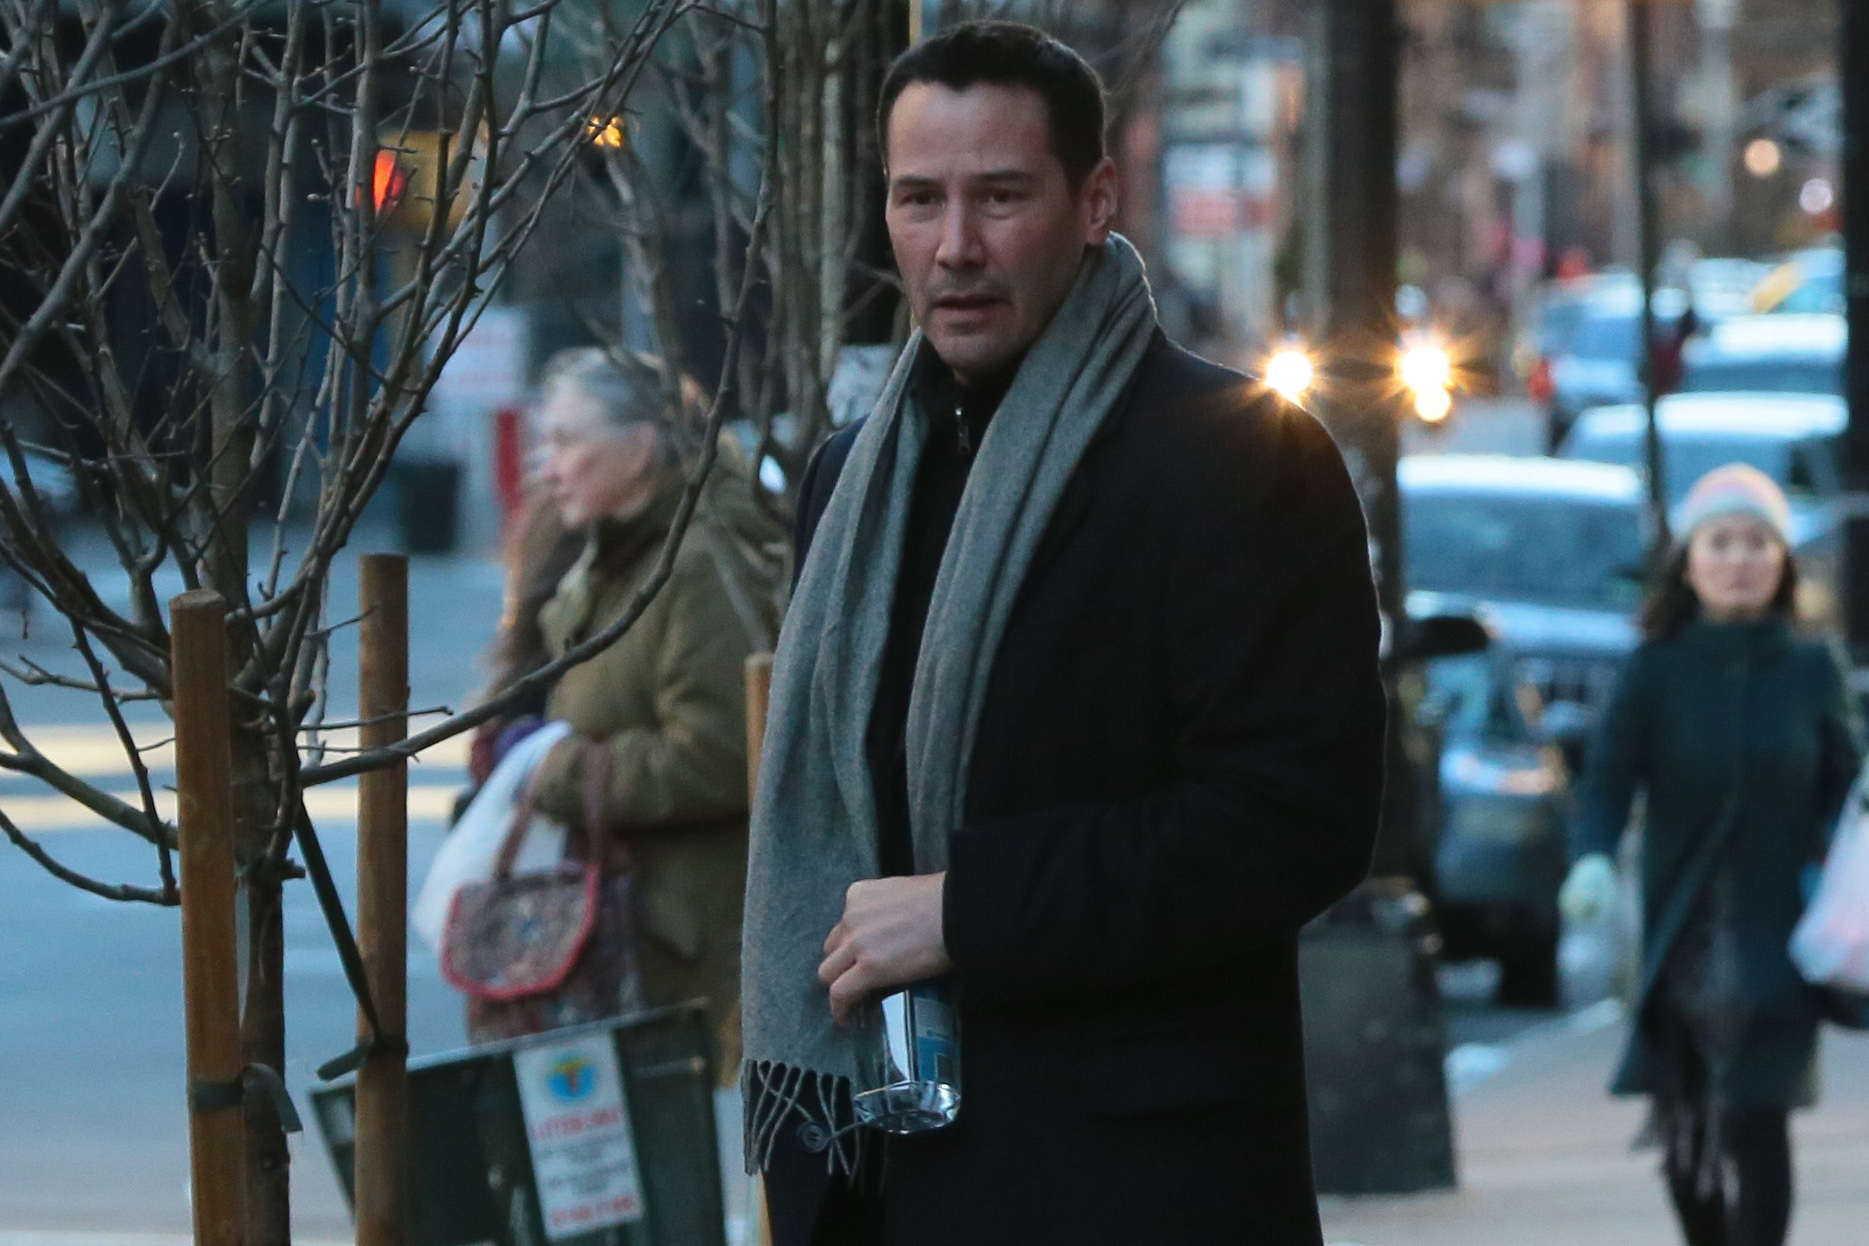 Keanu Reeves steps out in New York